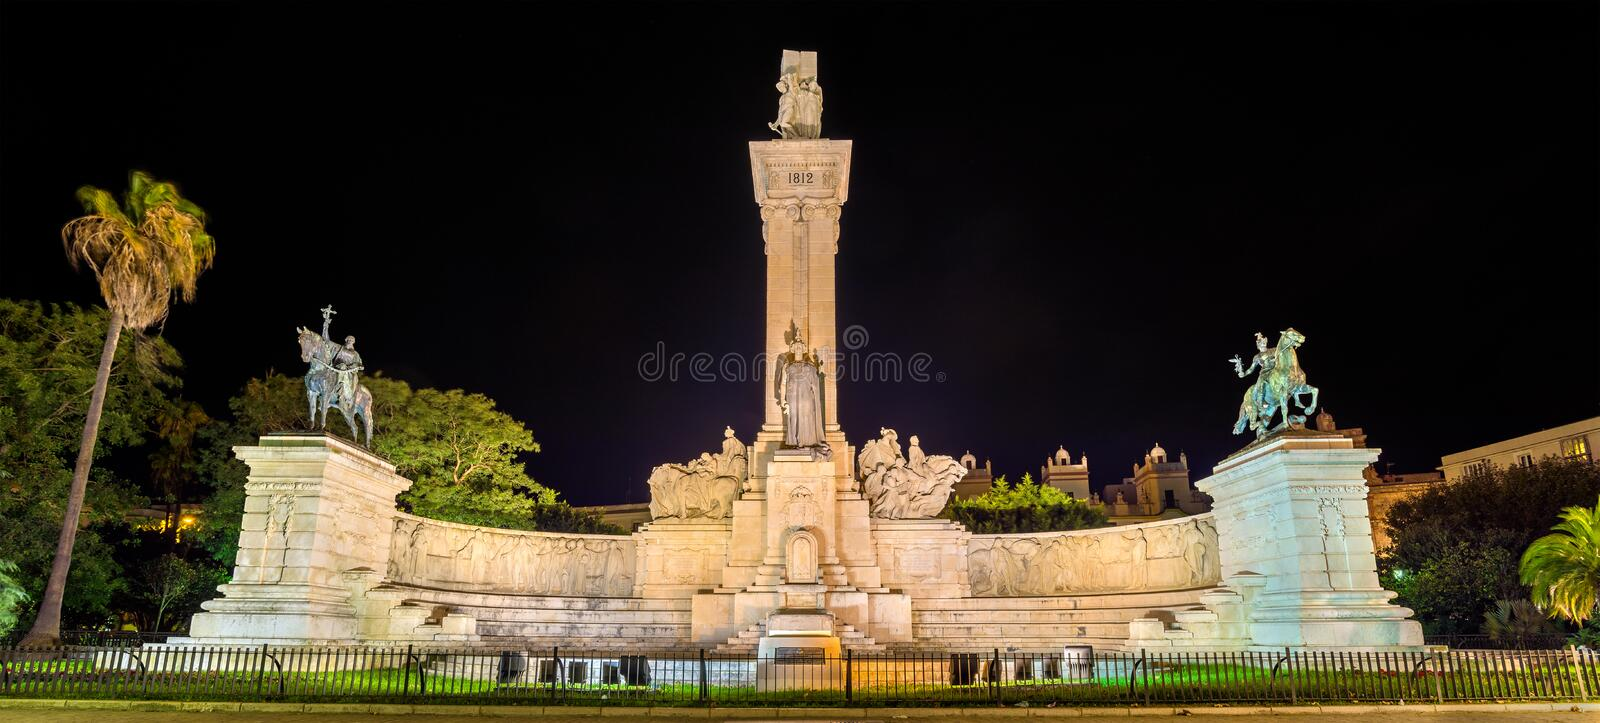 Monument of the 1812 Constitution in Cadiz, Spain royalty free stock images